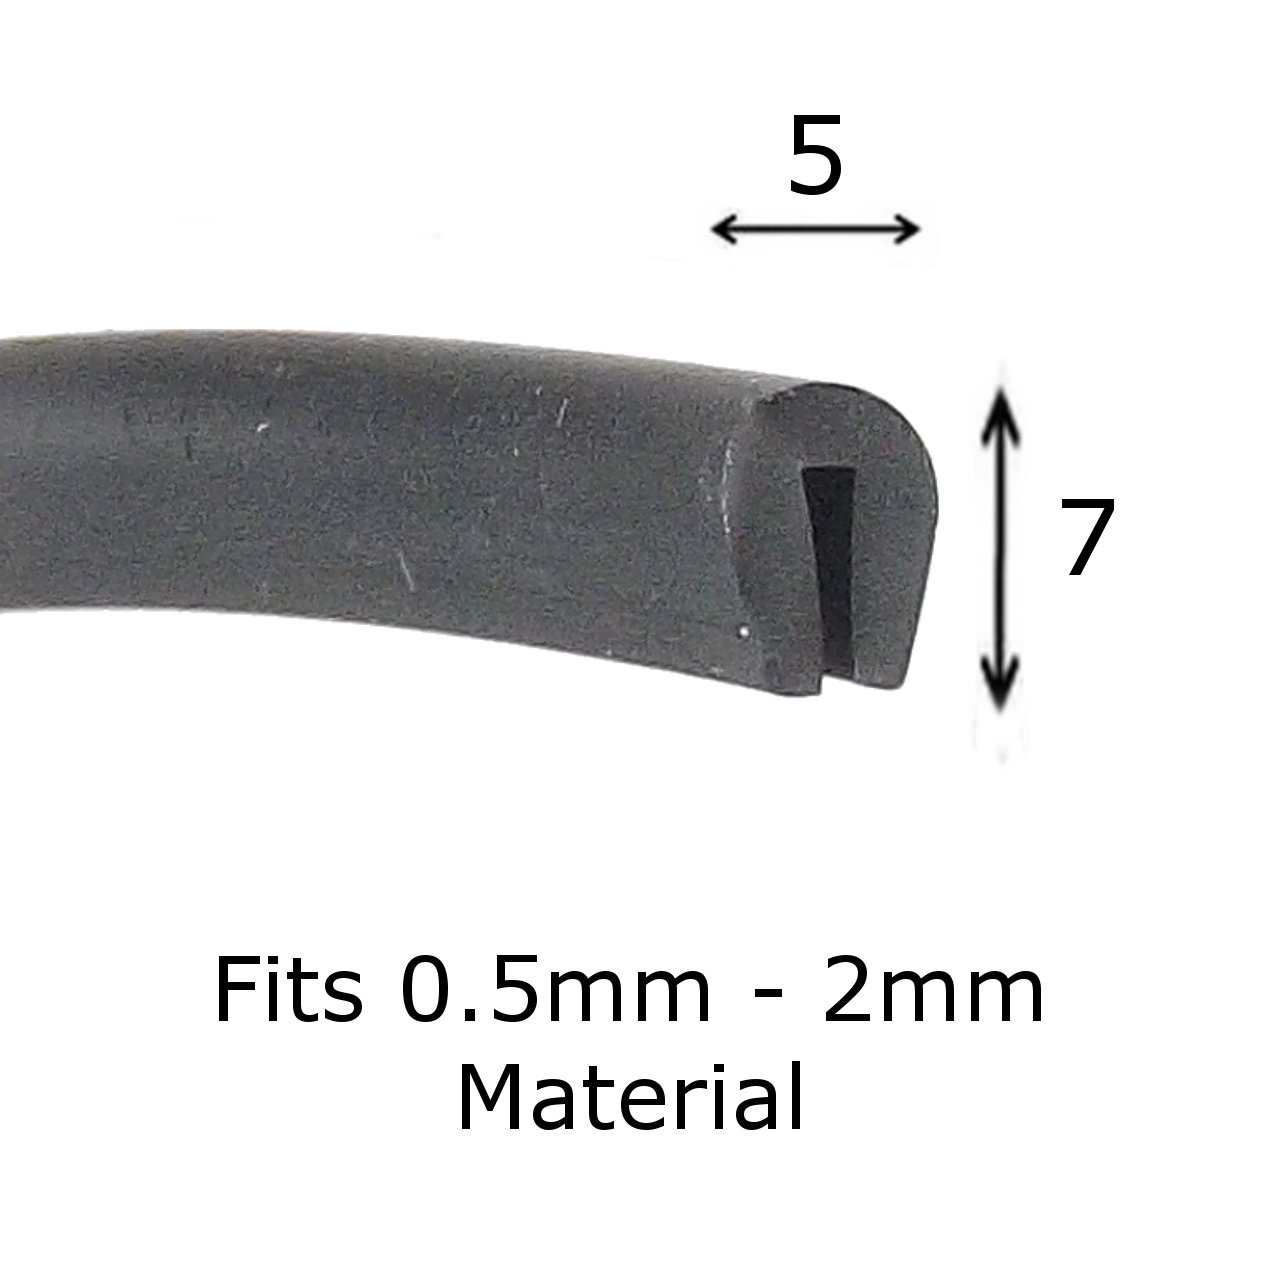 U section black rubber car edge protective trim 7mm x 5mm The Metal House